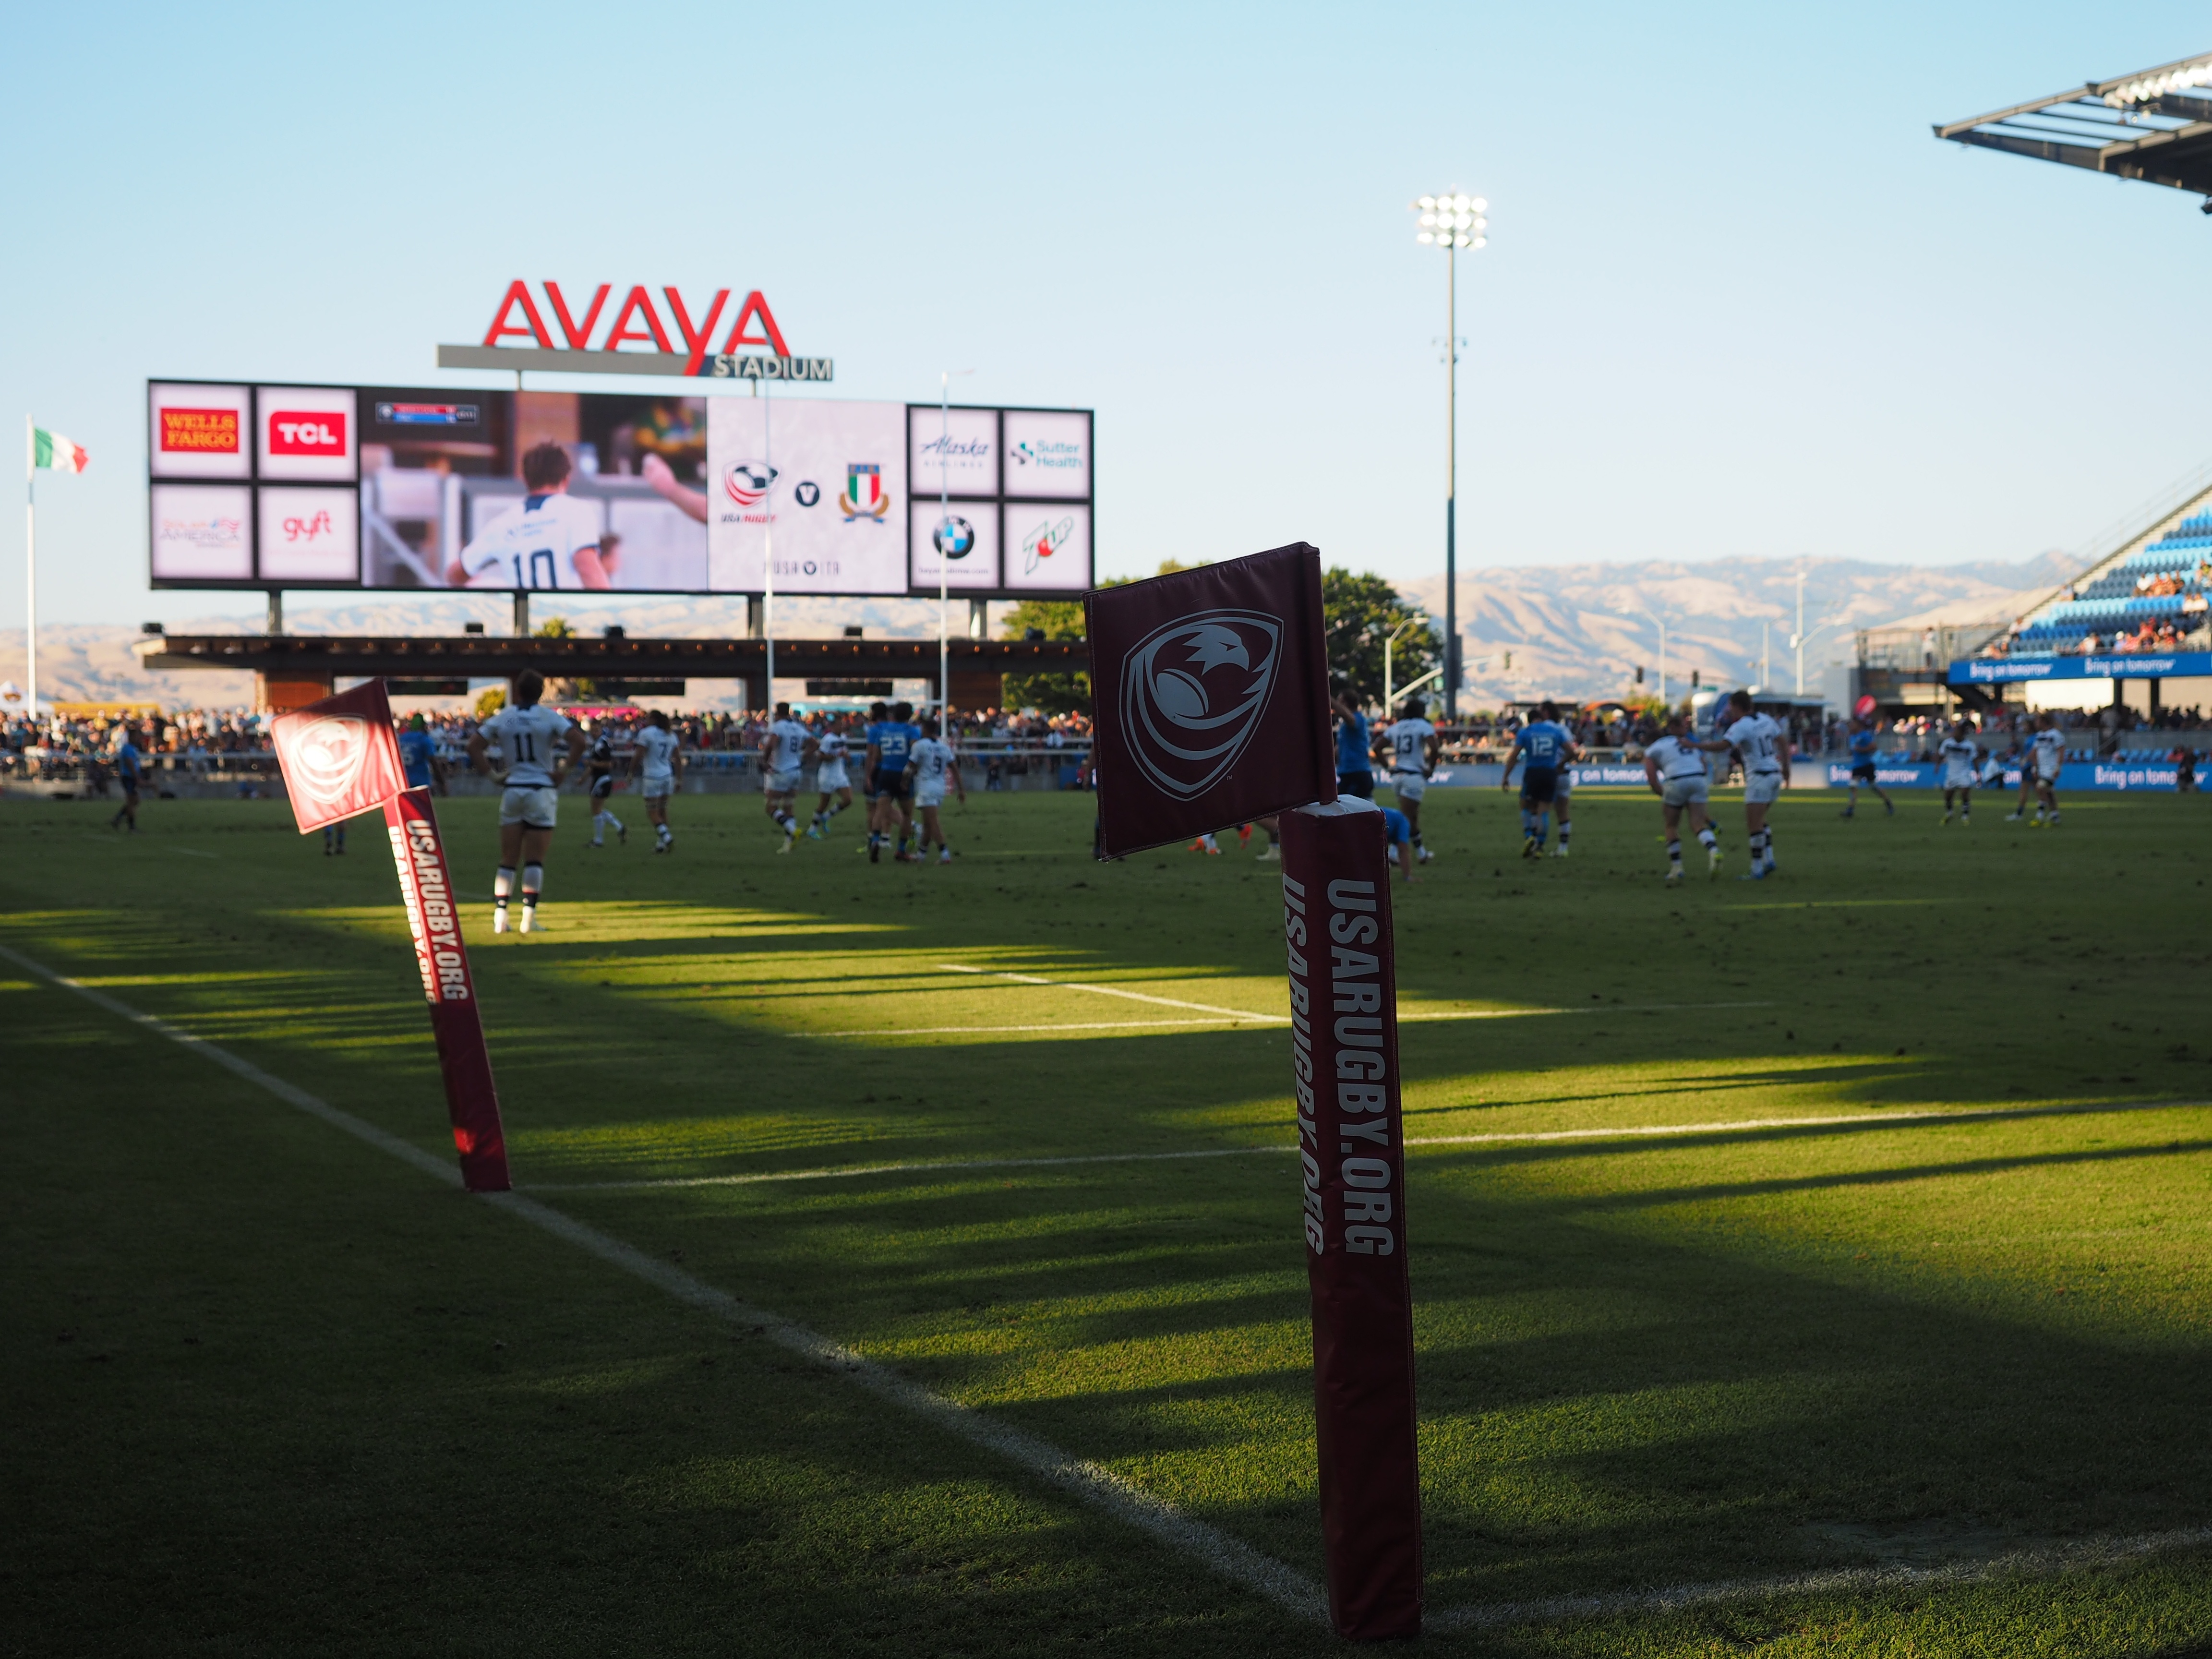 BridgeAthletic Halftime Contest During USA v Italy Rugby Test Match